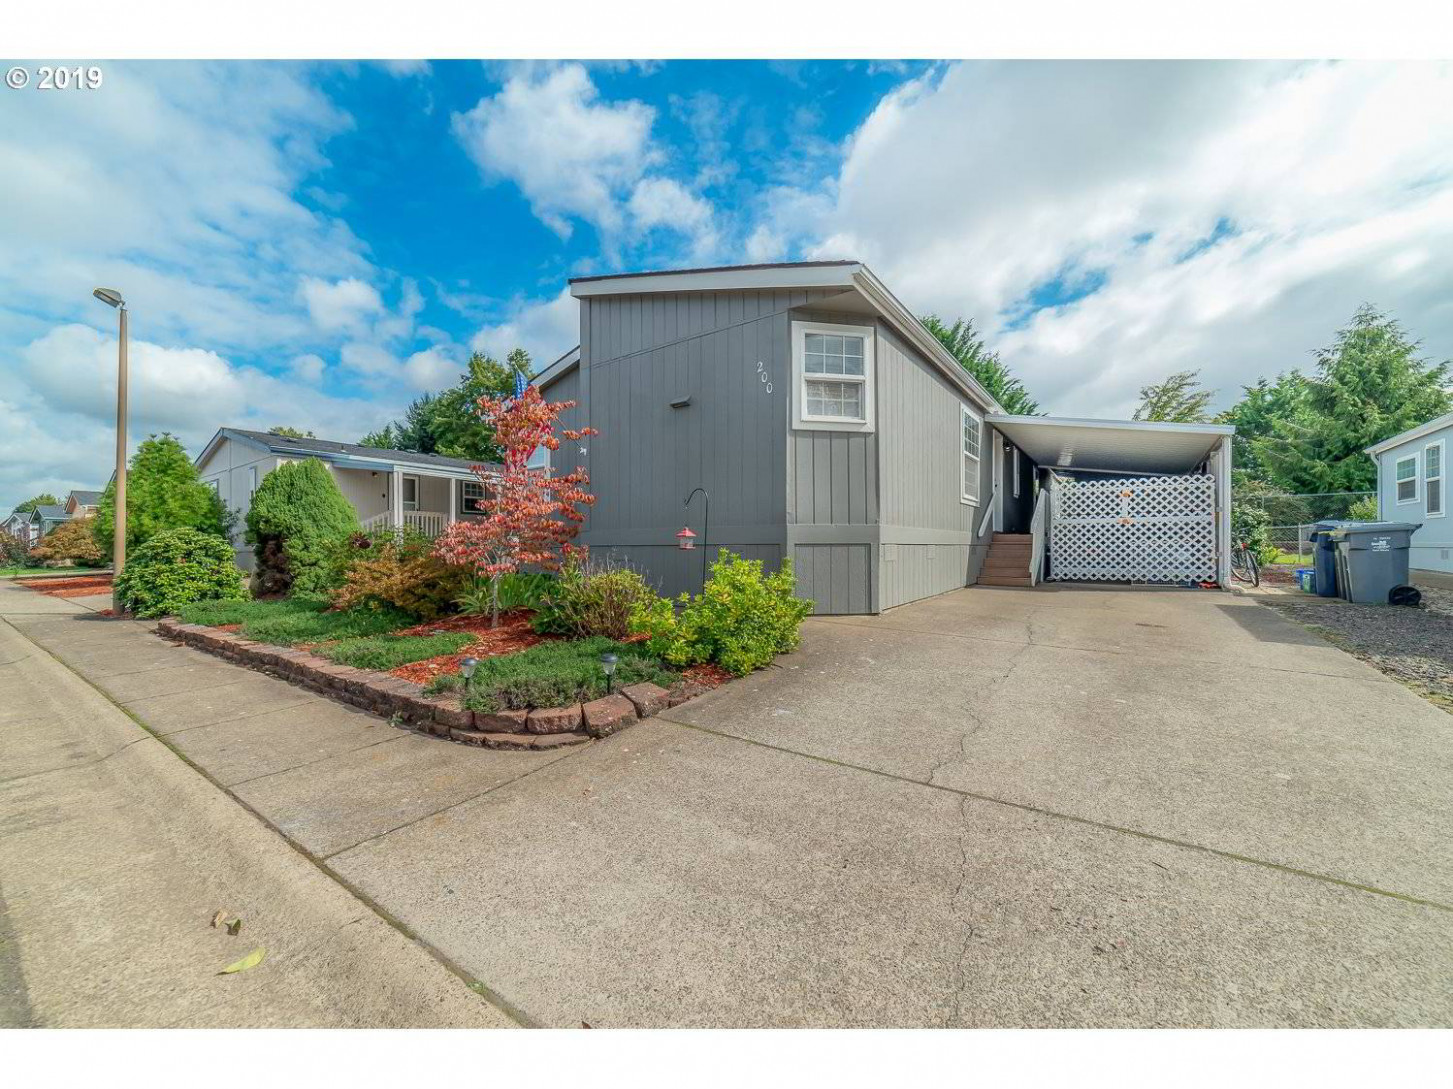 12 N TERRY ST SPACE 12 SP12, Eugene, OR 12 MLS ..